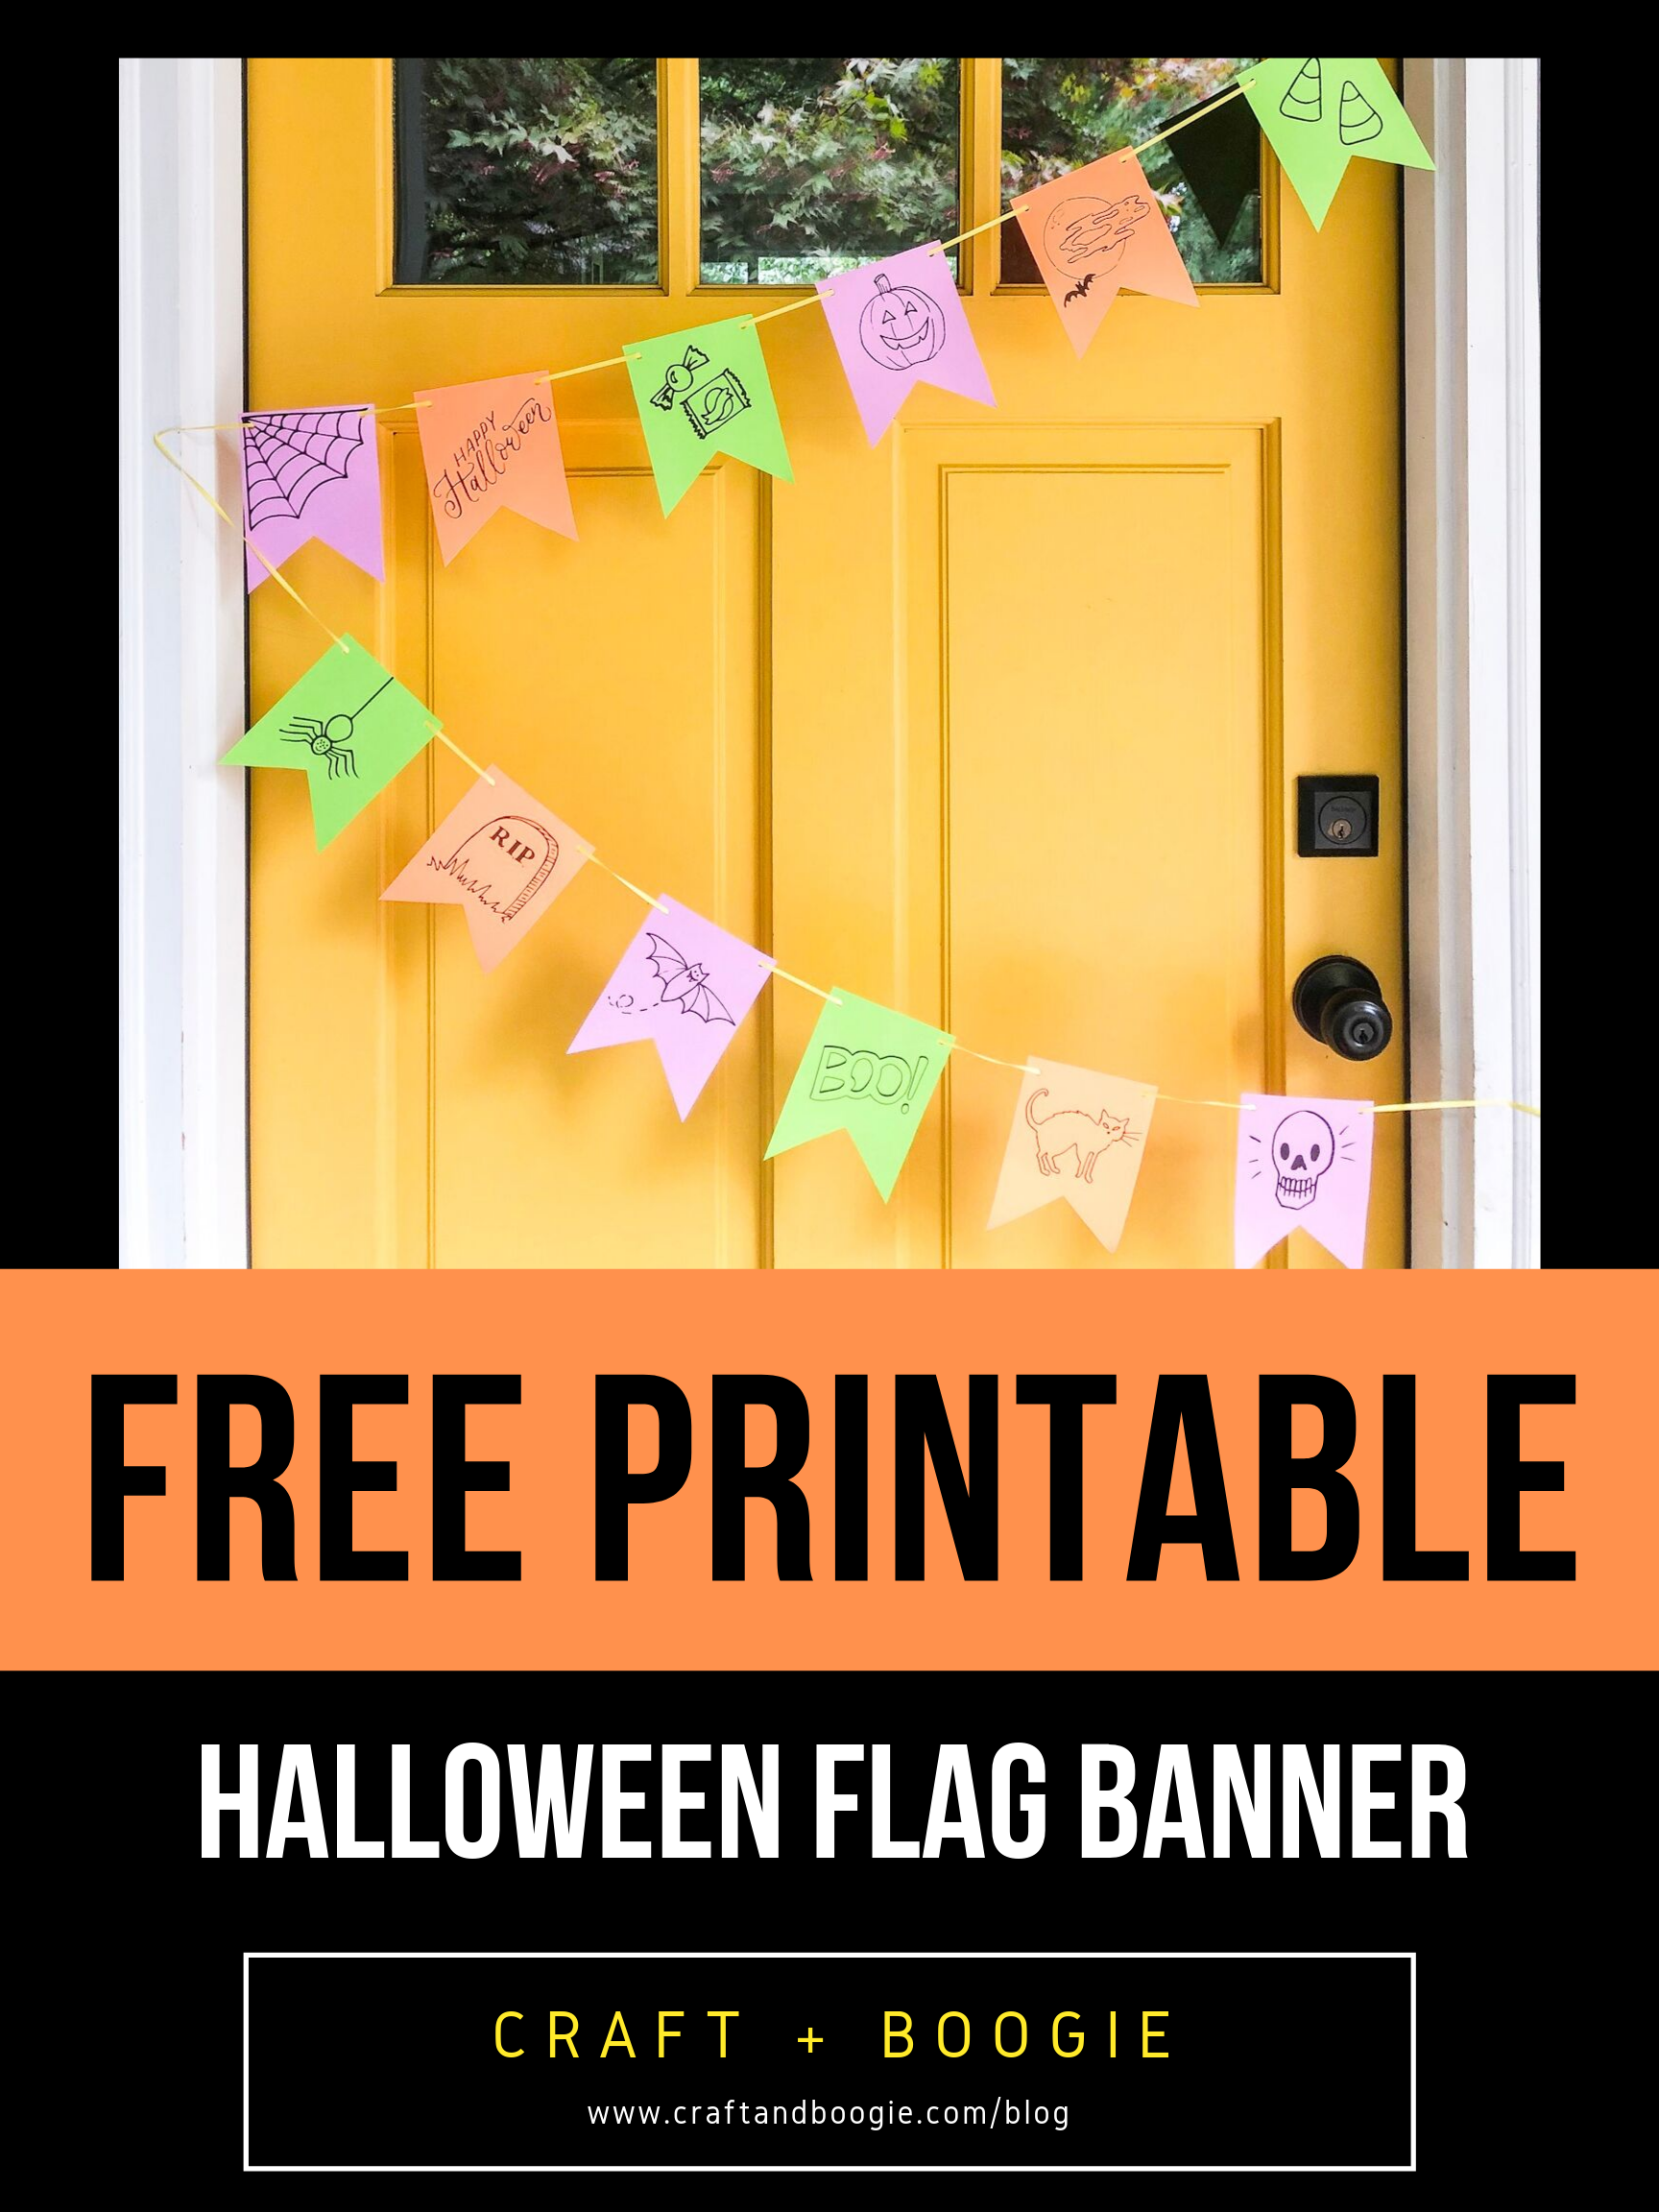 HALLOWEEN BANNER POSTER.png